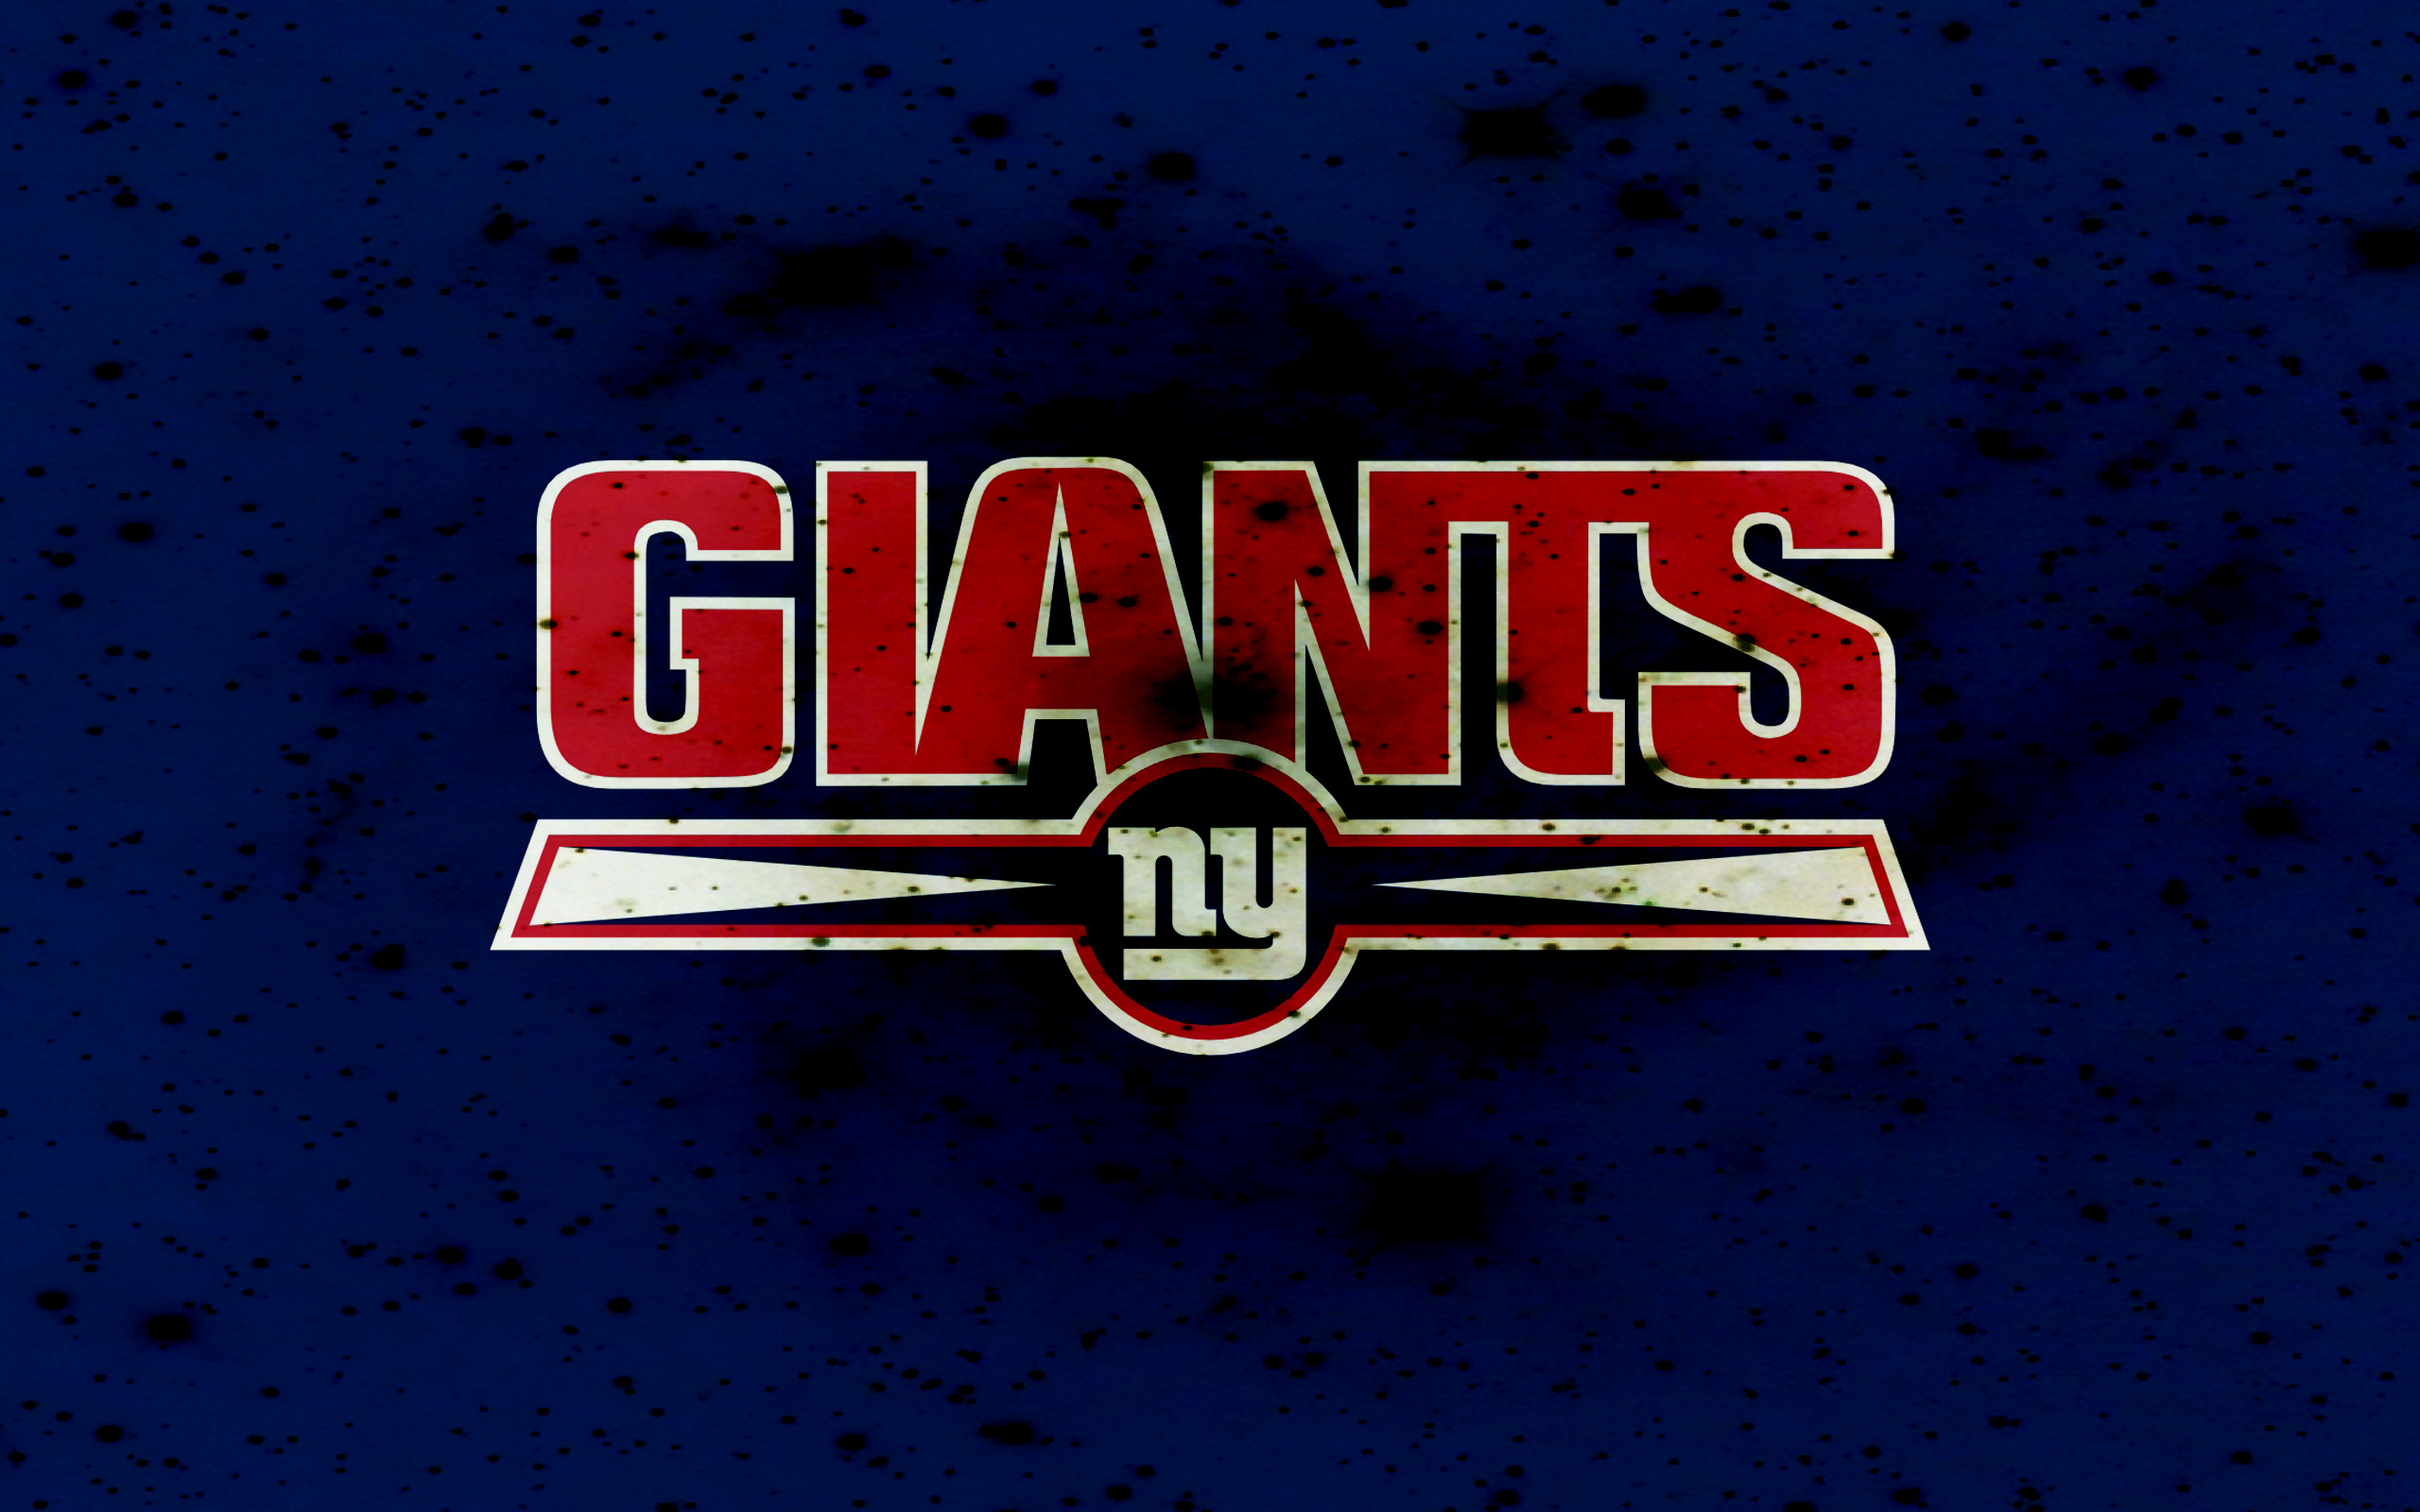 34 New York Giants HD Wallpapers